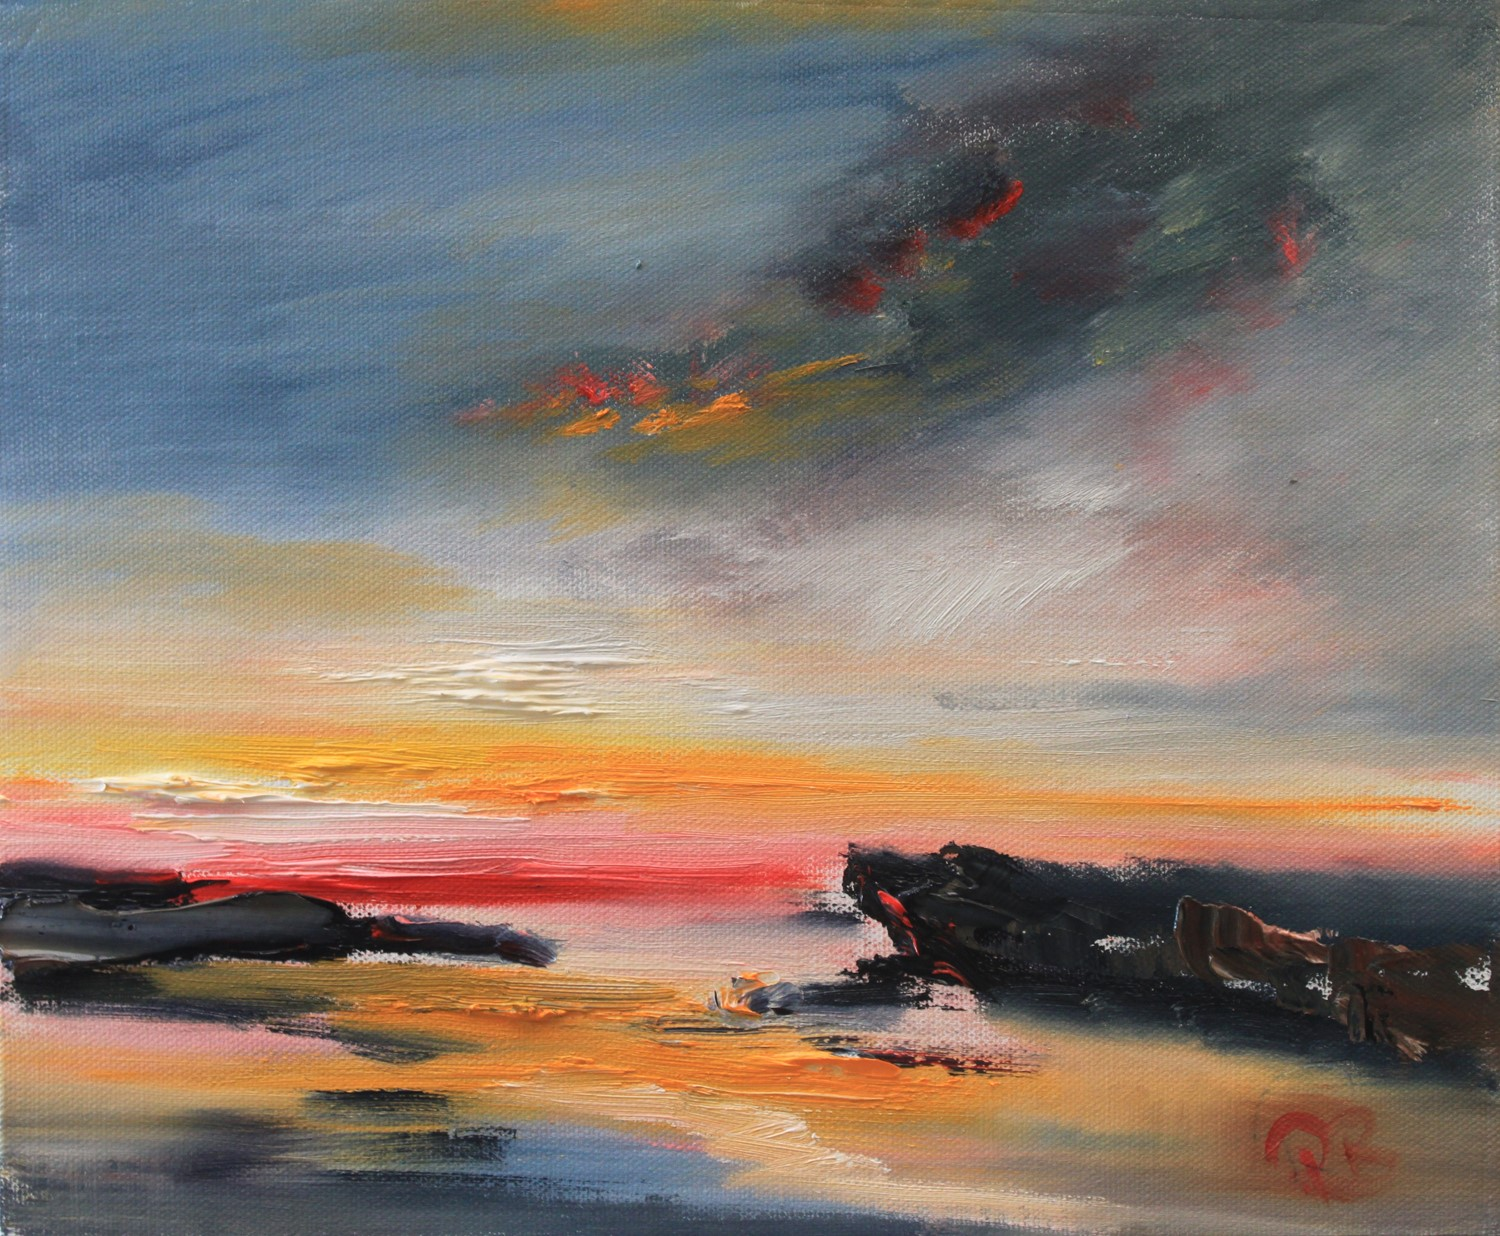 'To the Isles' by artist Rosanne Barr